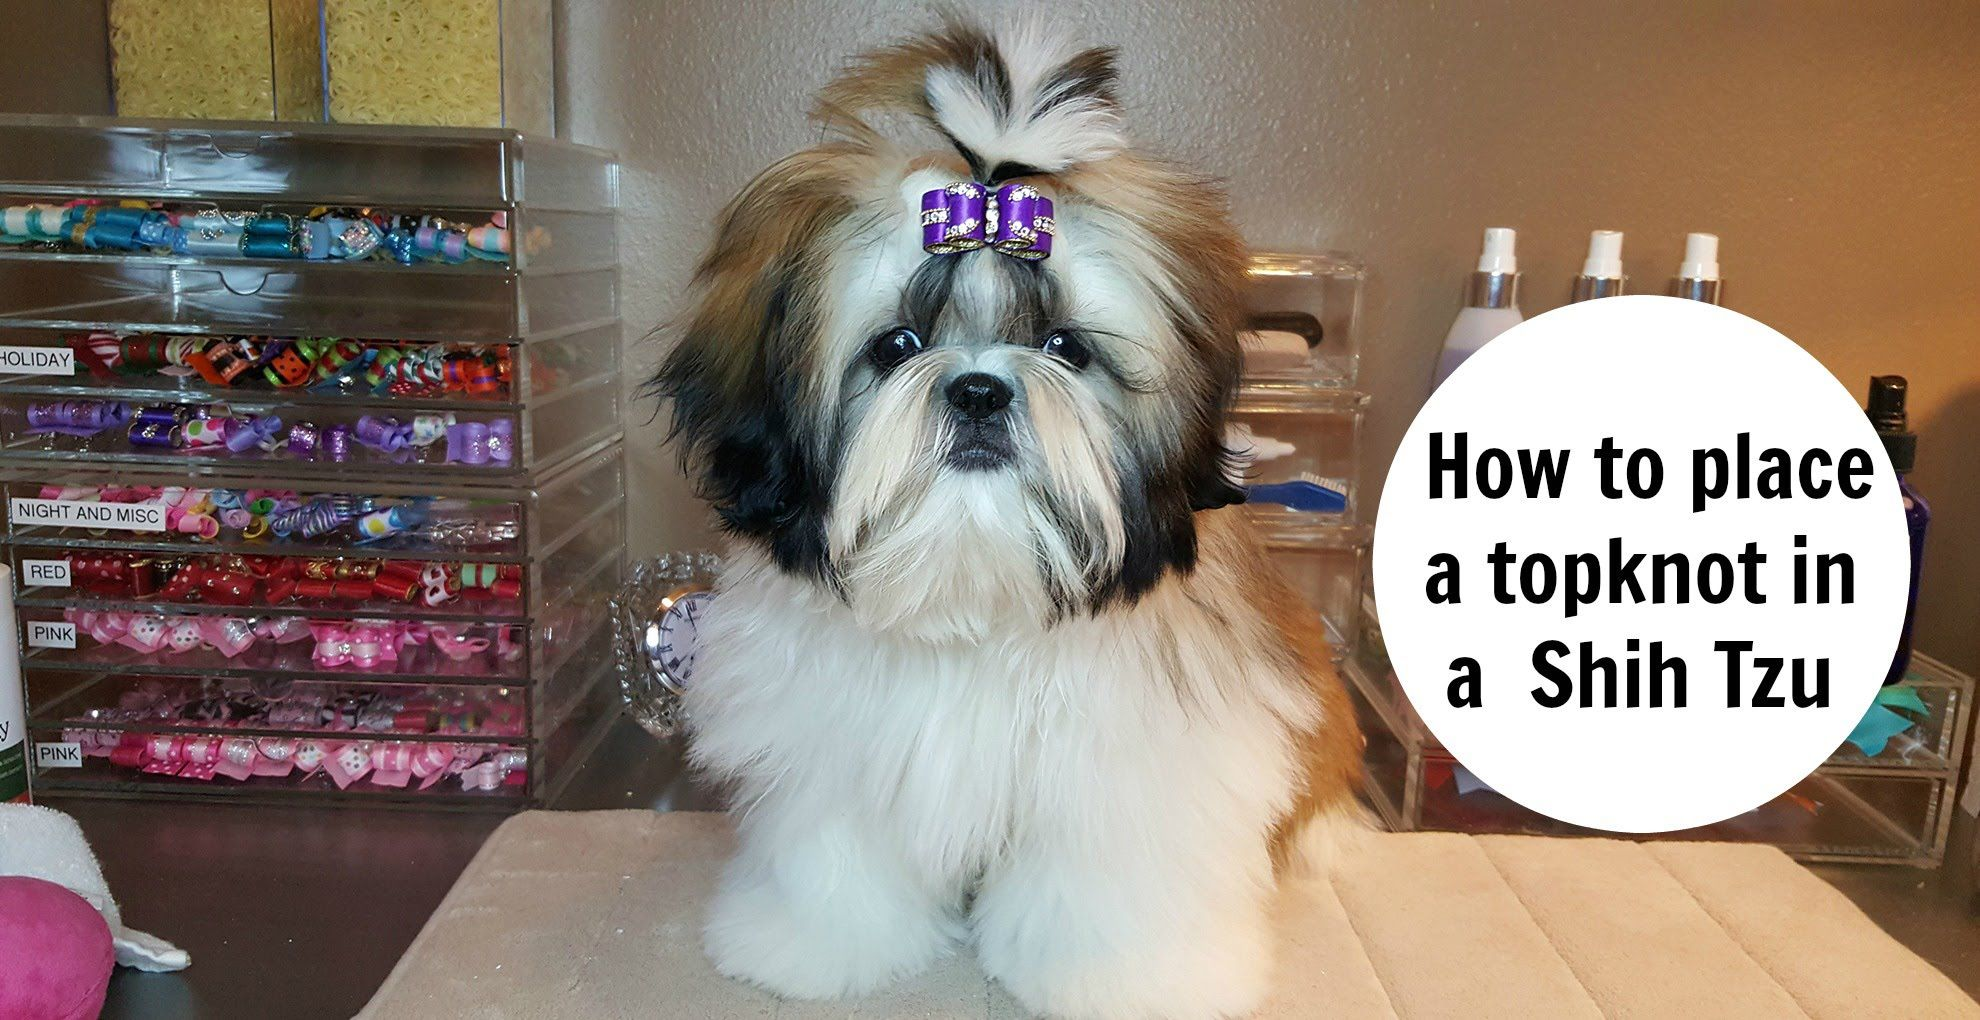 How To Place A Topknot In A Shih Tzu Youtube Shih Tzu Hair Styles Shih Tzu Grooming Shih Tzu